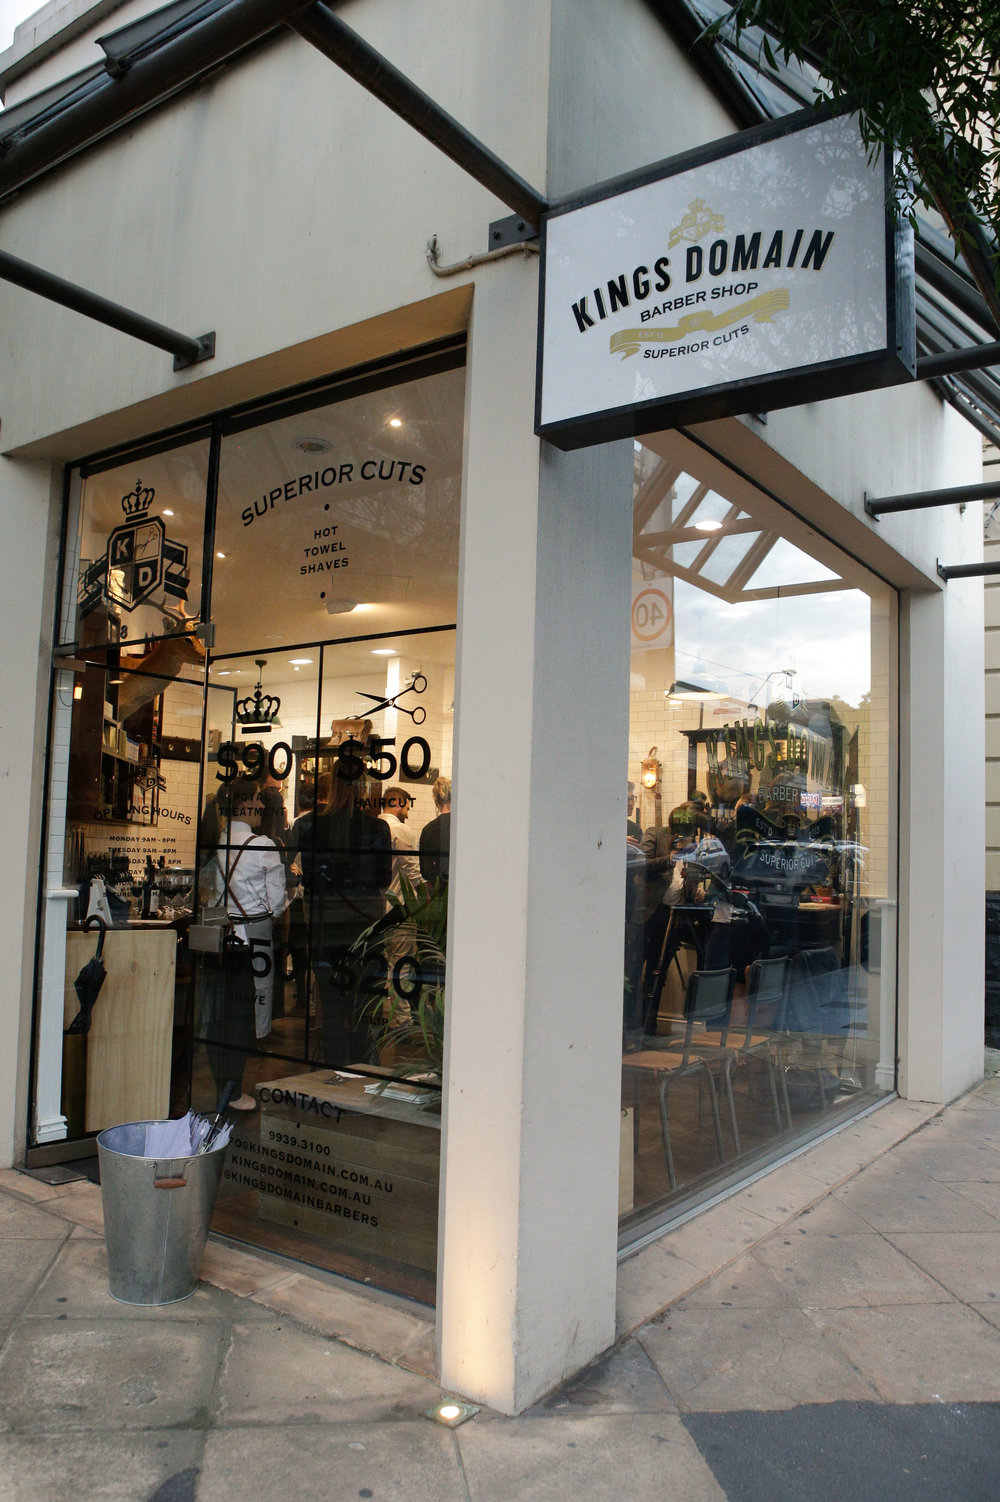 gentlemans-collection-movember-series-3-2016-kings-domain-barber-shop-exterior-2.jpg